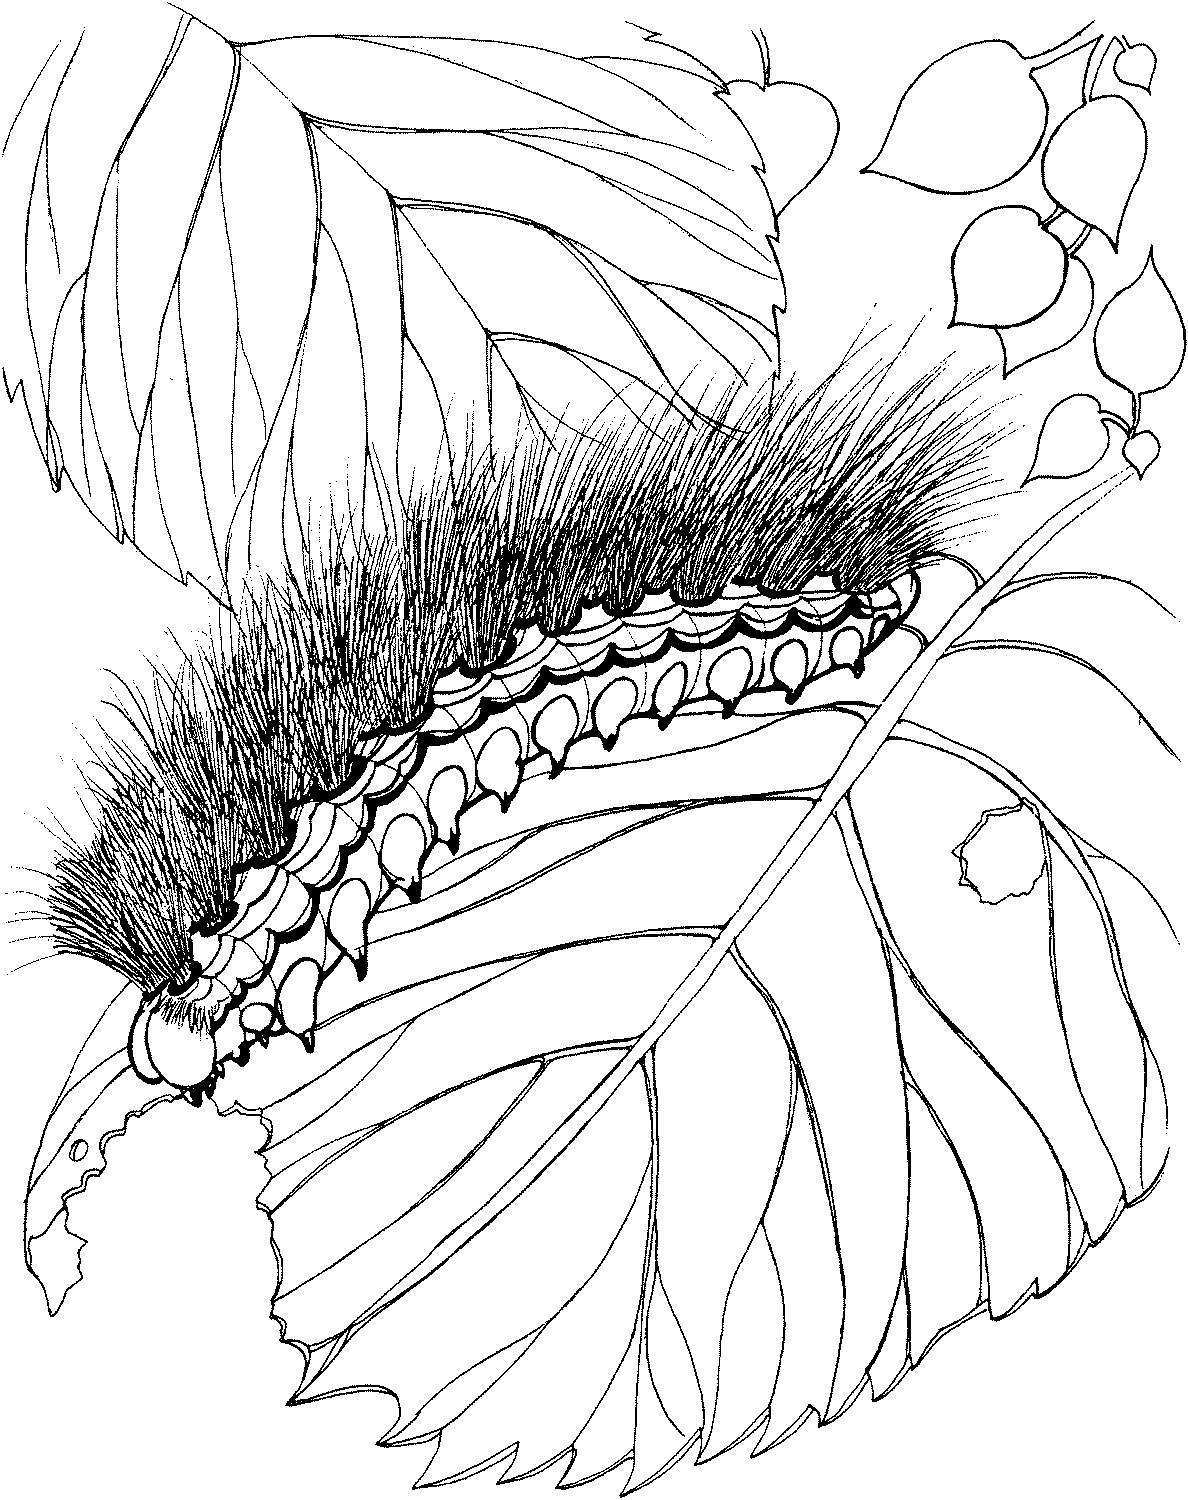 caterpillar coloring pages free free printable caterpillar coloring pages for kids pages caterpillar free coloring